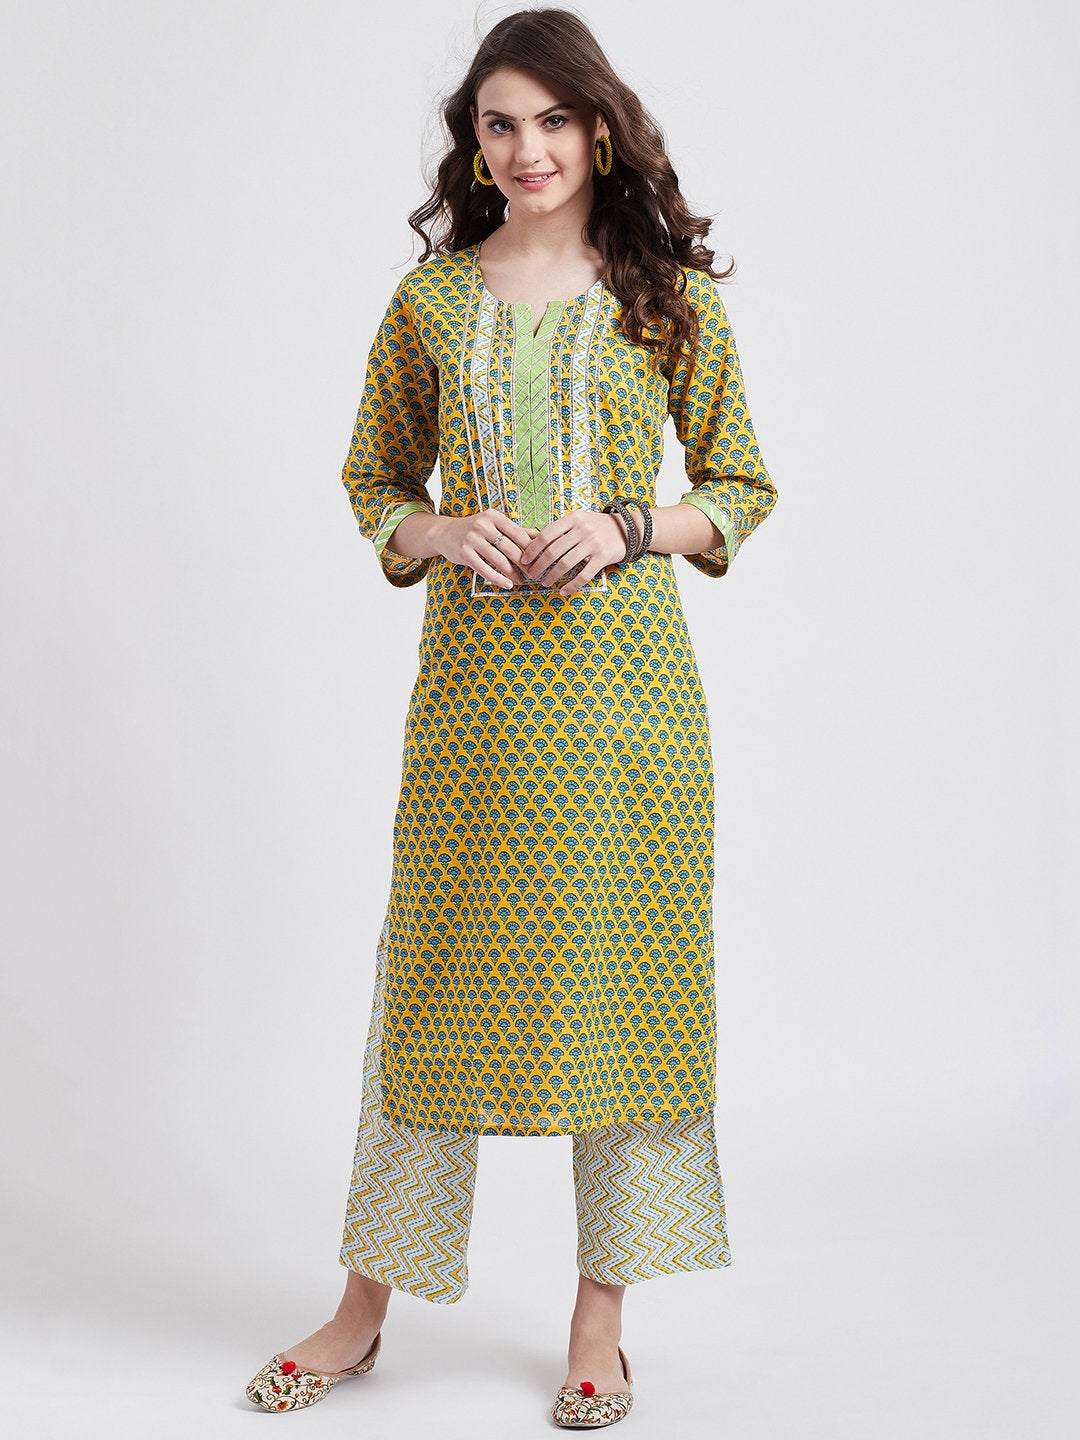 Hand block printed yellow kurta with gota detailing and hand block printed pants